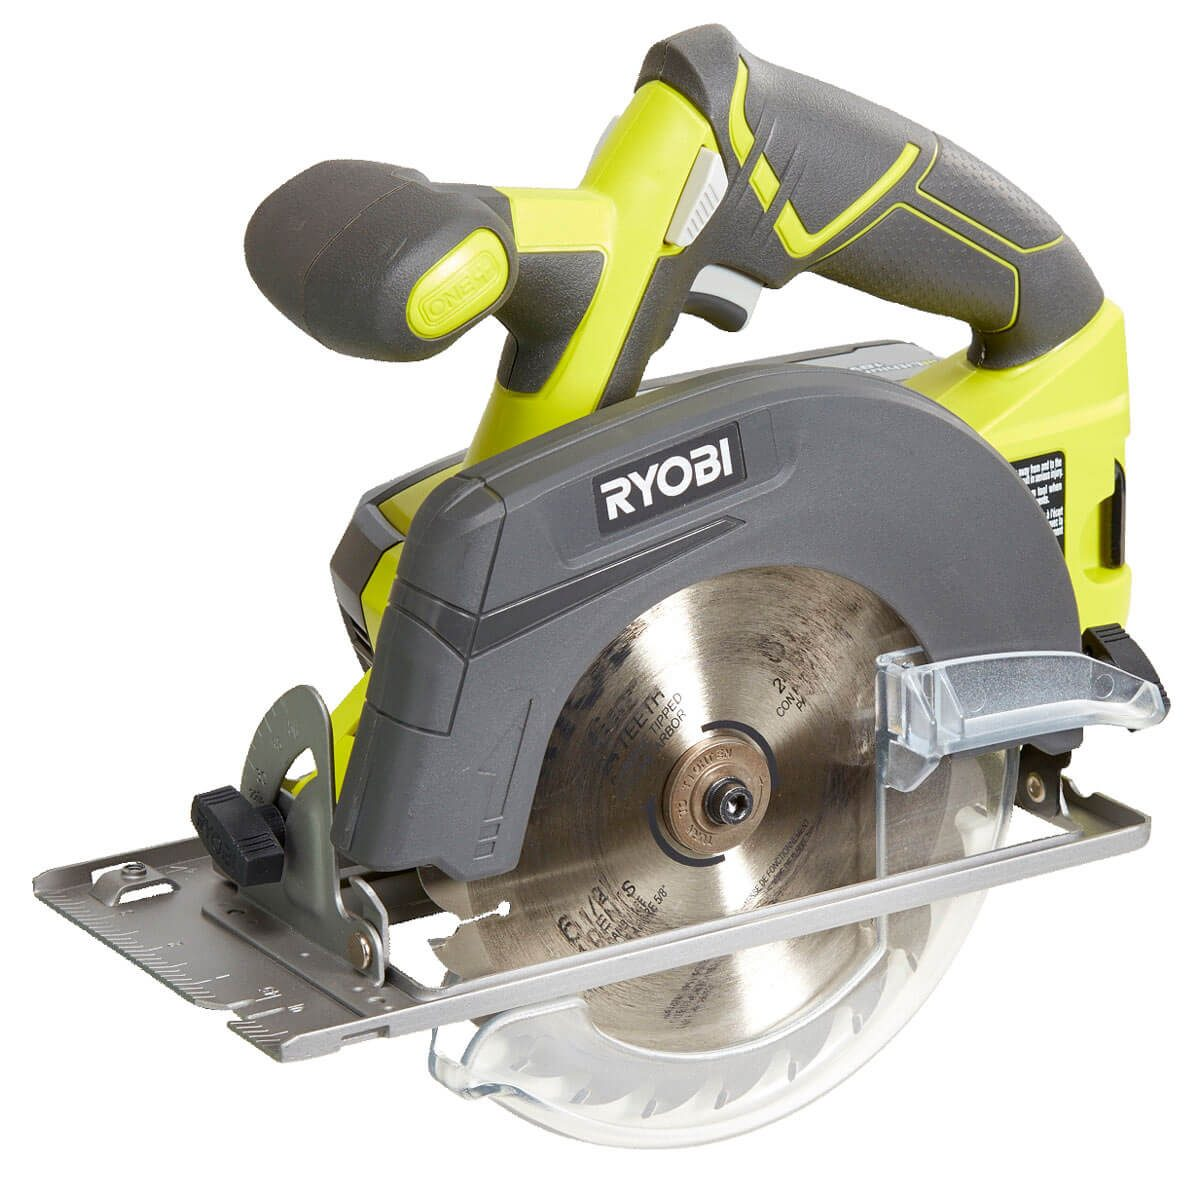 2018 best in diy cordless circular saws the family handyman fh18djf58352028 circular saws greentooth Image collections